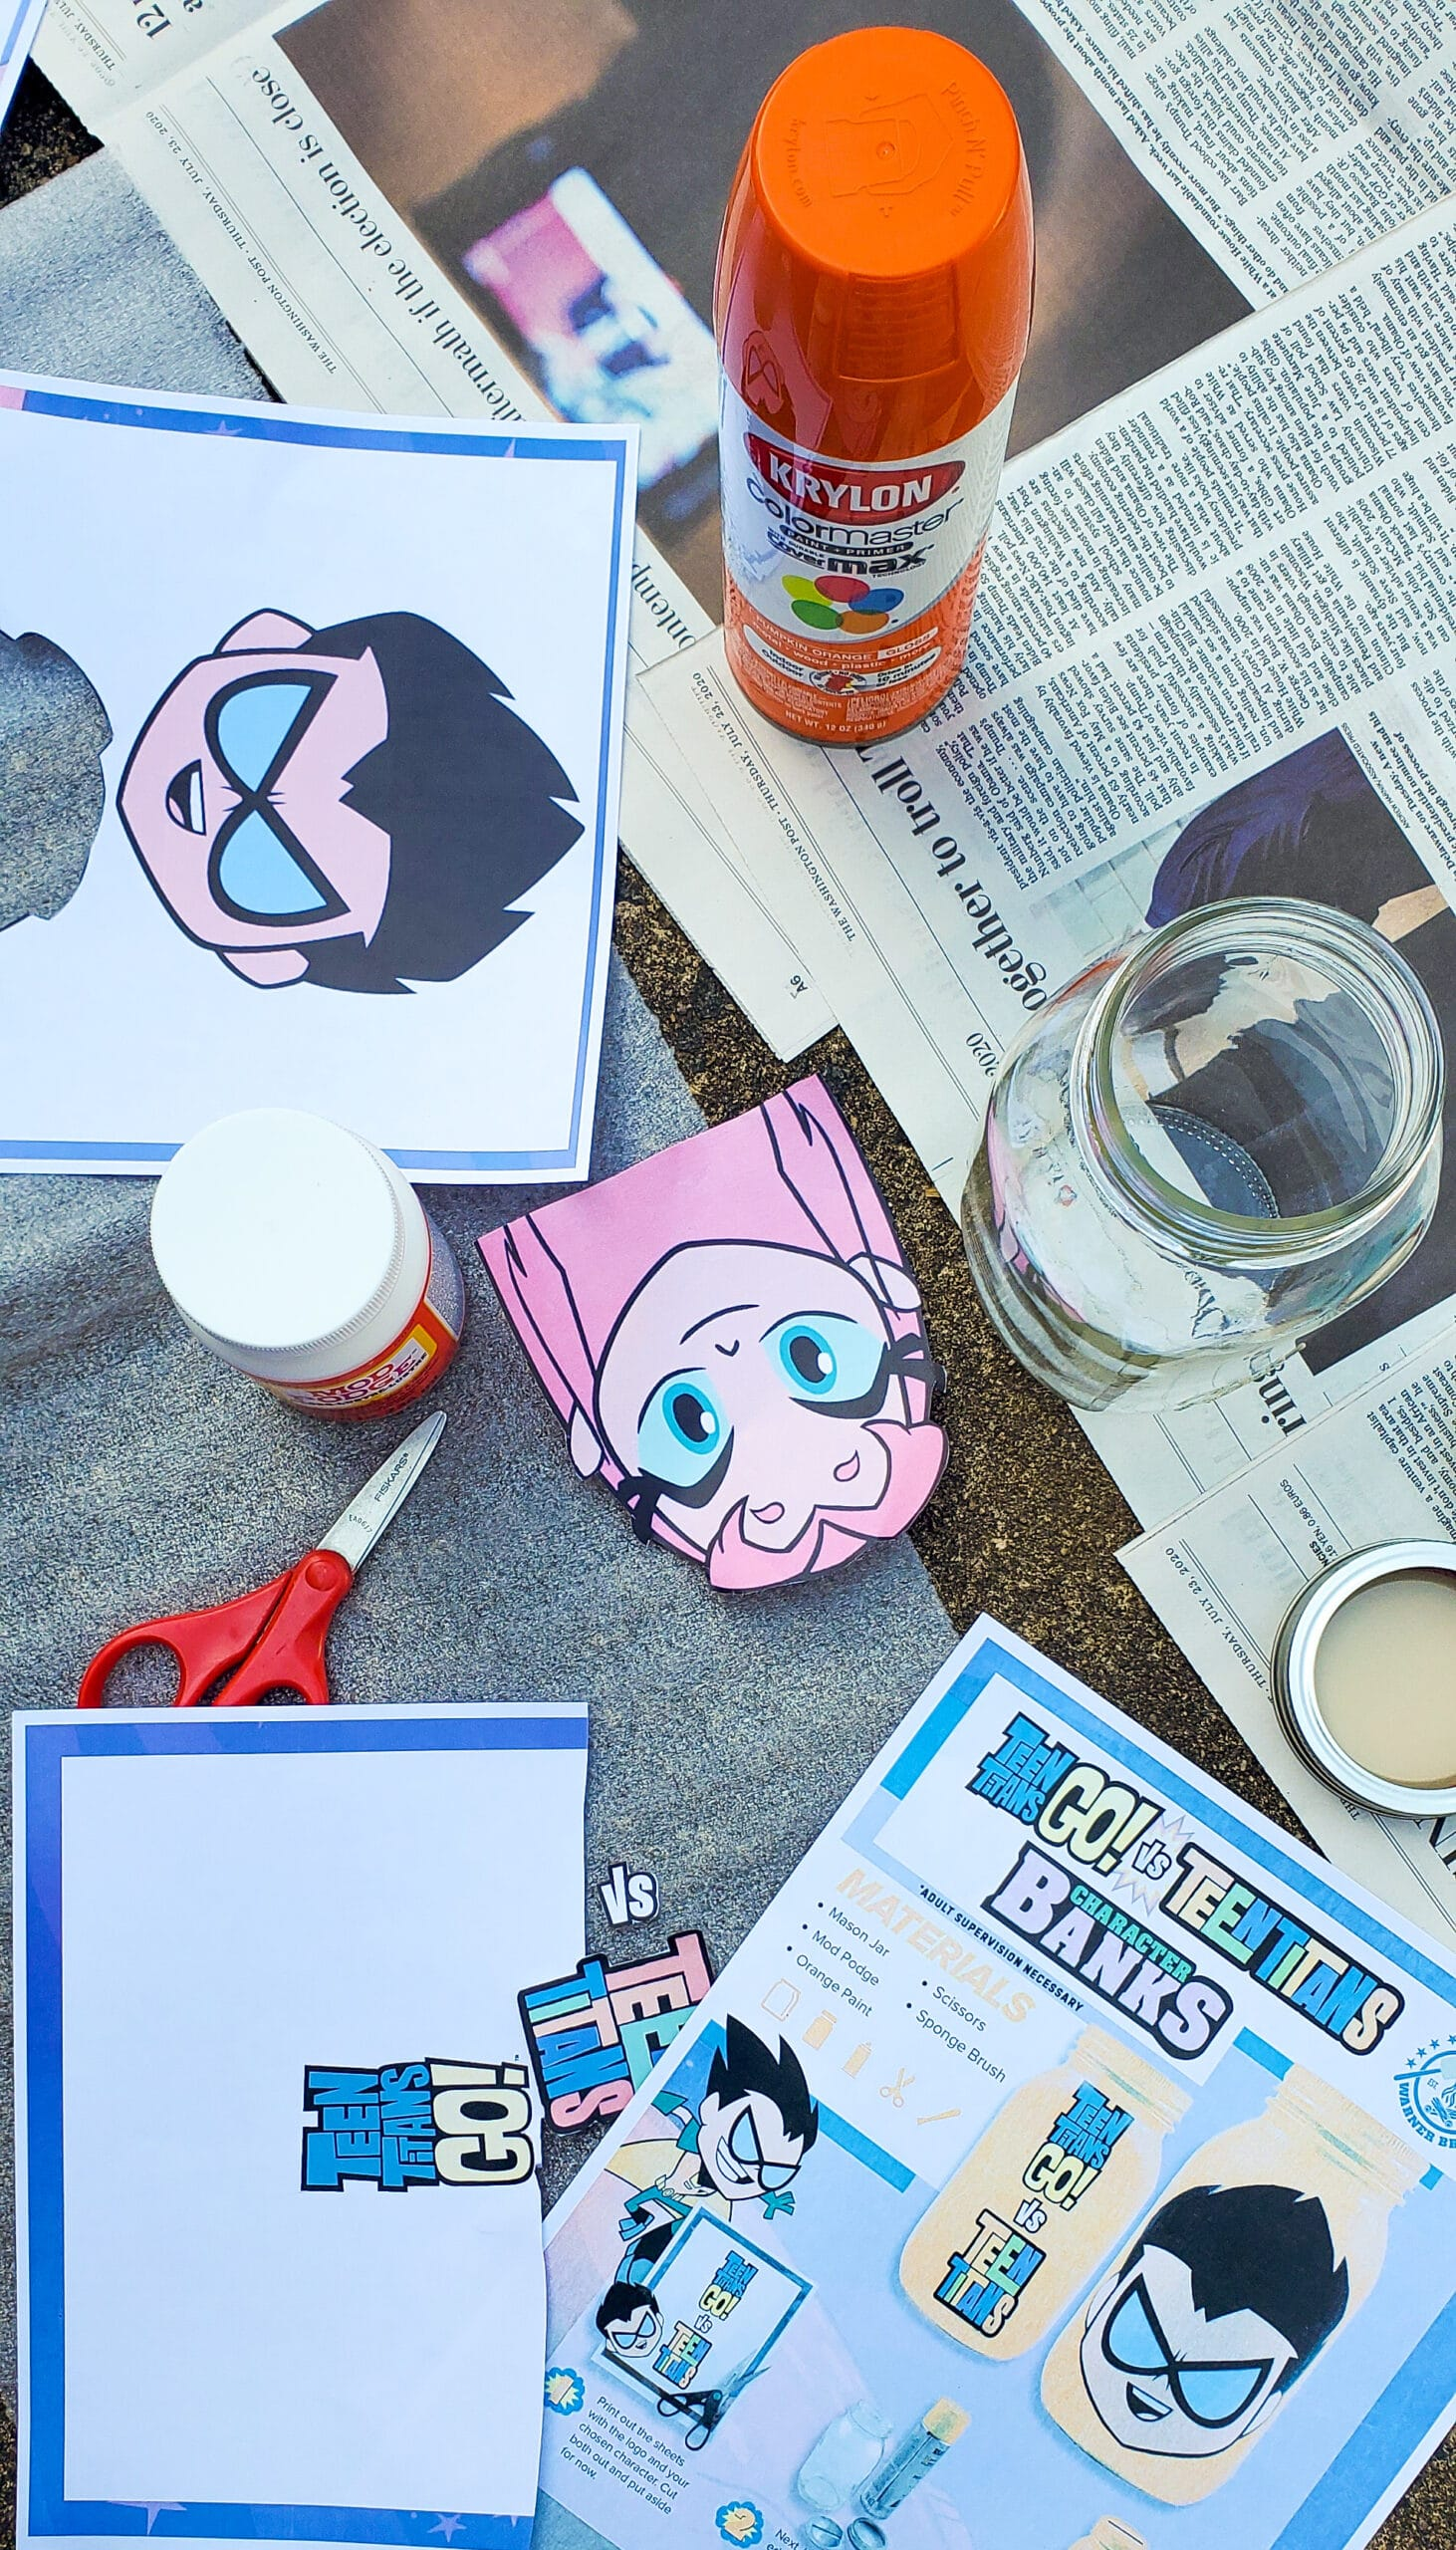 Teen Titans Go!Character Banks Supplies. It's week 5 at Camp Warner Bros.! It's time to get crafty with this week's activity Teen Titans Go! Vs. Teen Titans Character Banks. Grab your printables on my blog, along with some more supplies to create your very own Teen Titans Go! vs Teen Titans Character Banks.